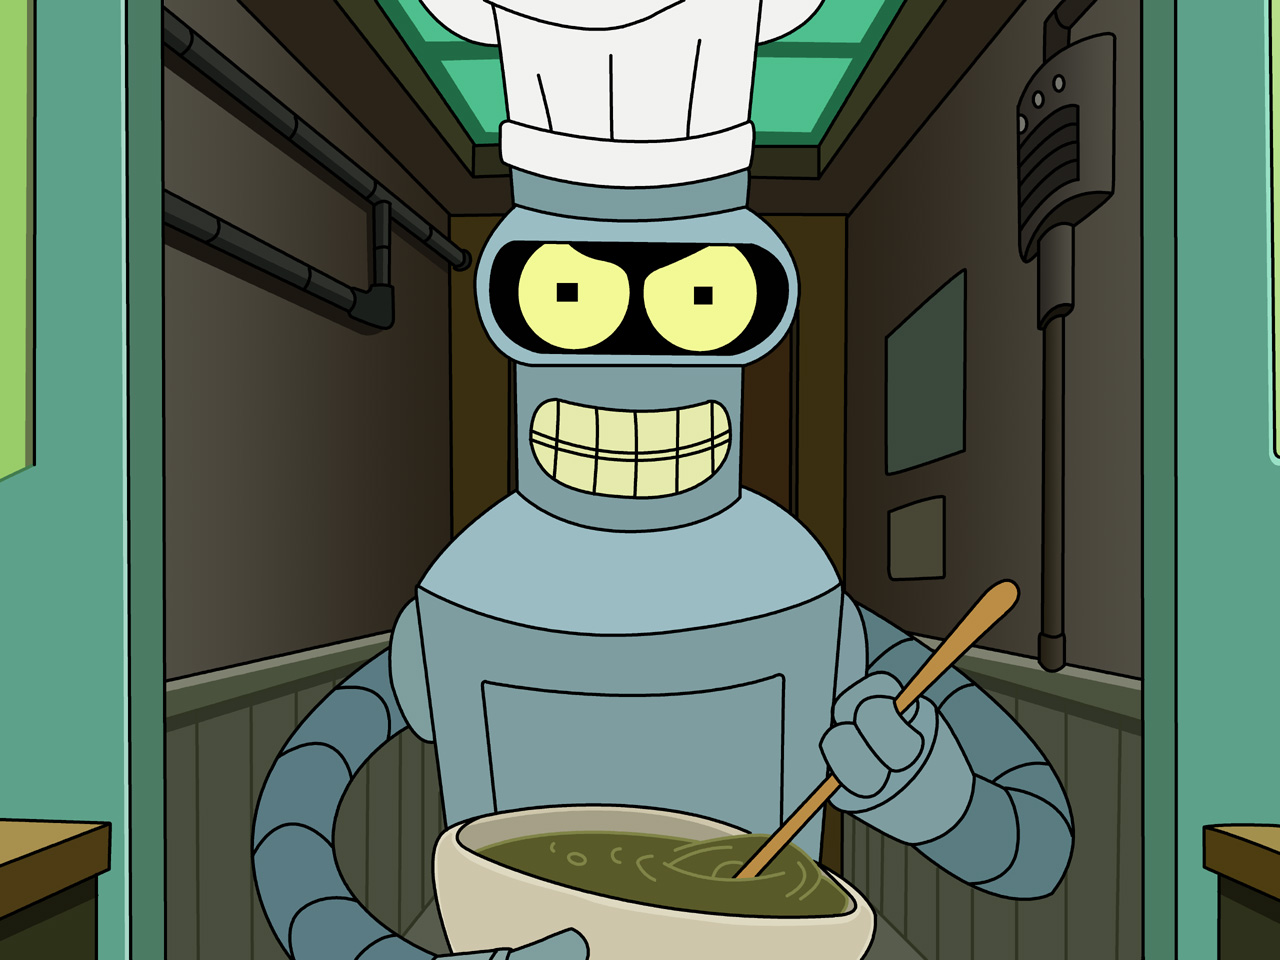 Bender Wallpaper 1280x1024 1280x960